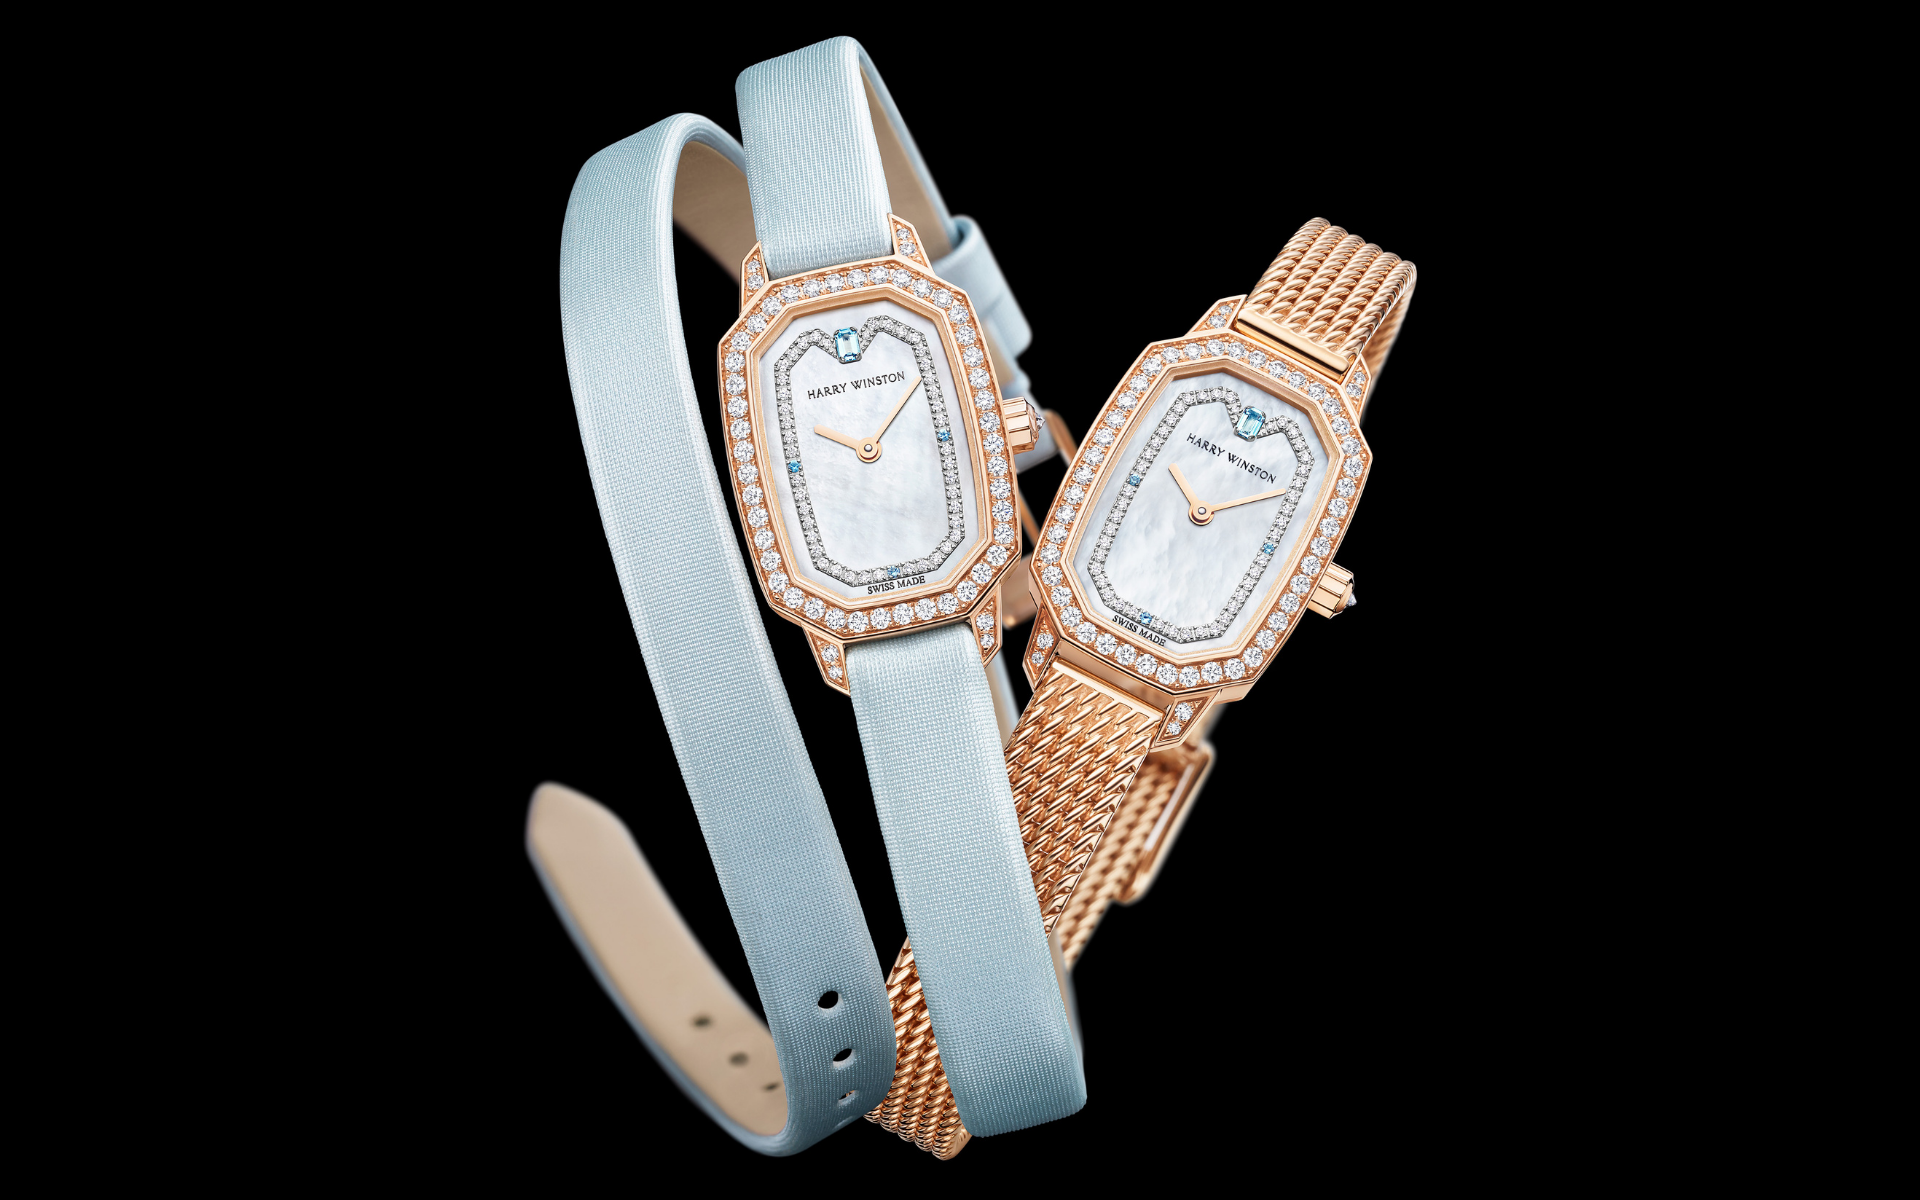 Harry Winston Presents Sophistication & Strength In The Emerald Collection